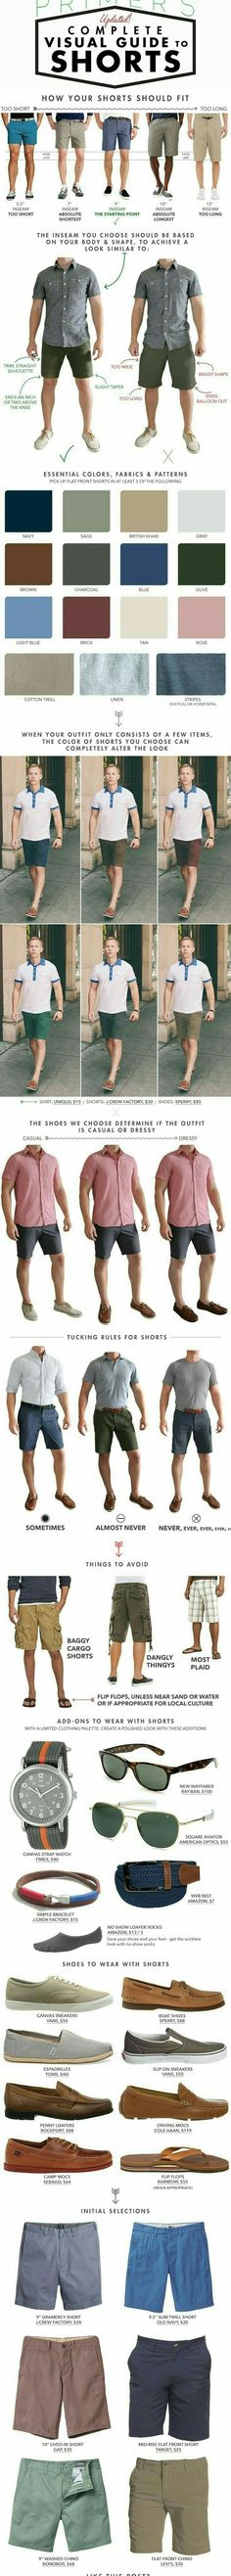 Stay cool and look smart this summer with our complete visual guide for all things shorts, covering fit and fabric to shoes and accessories. Like the Clif notes guide to men's summer fashion. Mode Masculine, Mode Outfits, Fashion Outfits, Fashion Tips, Fashion Trends, Fashion Clothes, Fashion Ideas, Fashion Check, Style Clothes